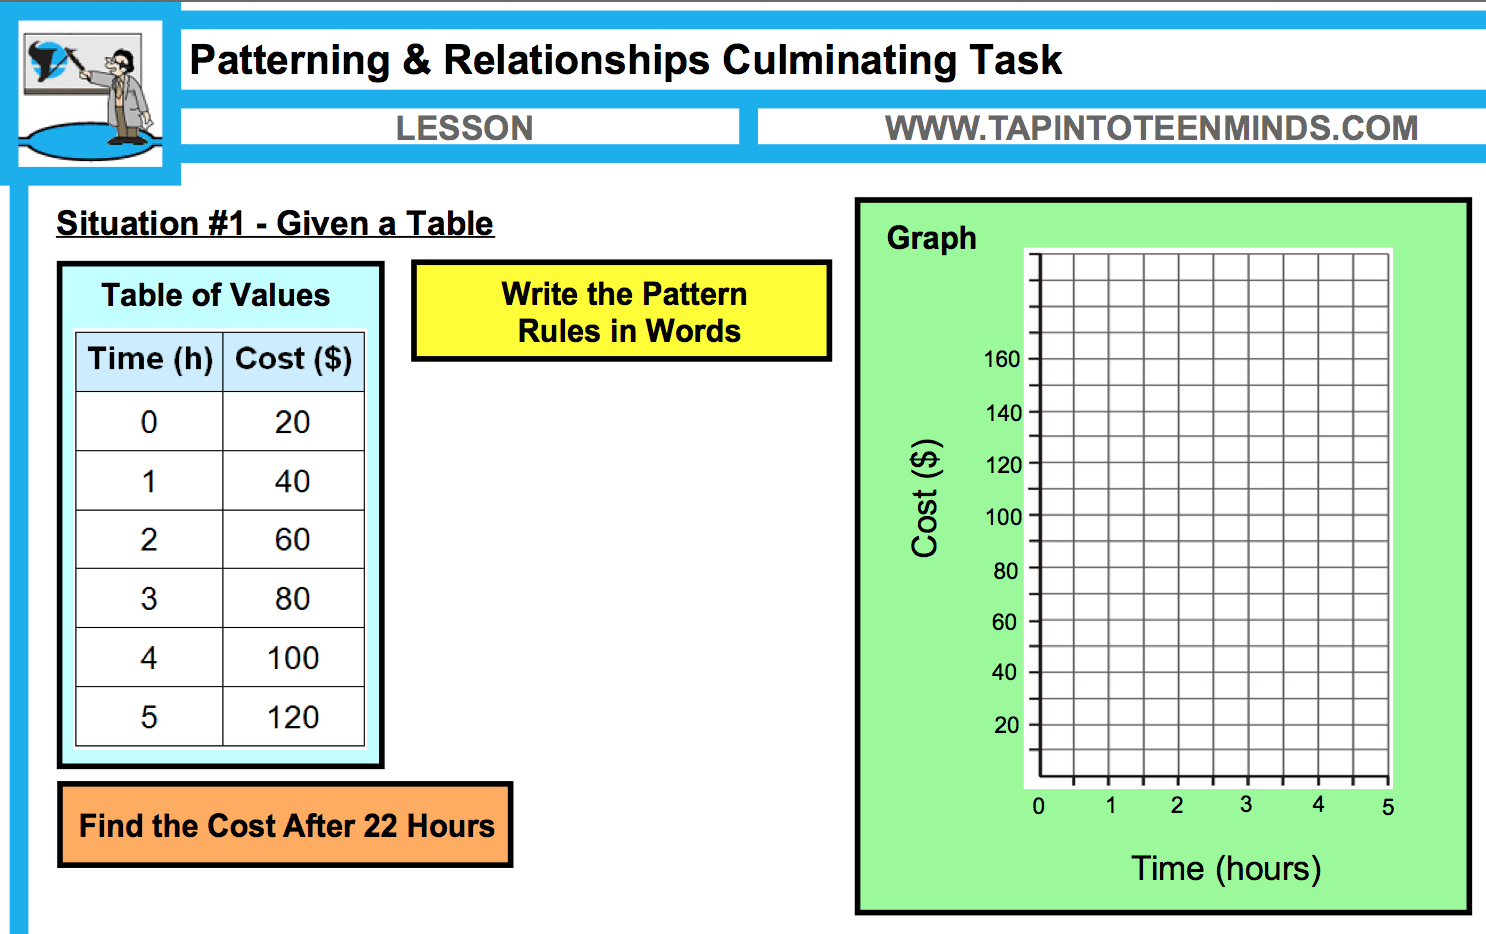 Patterns And Relationships Culminating Task